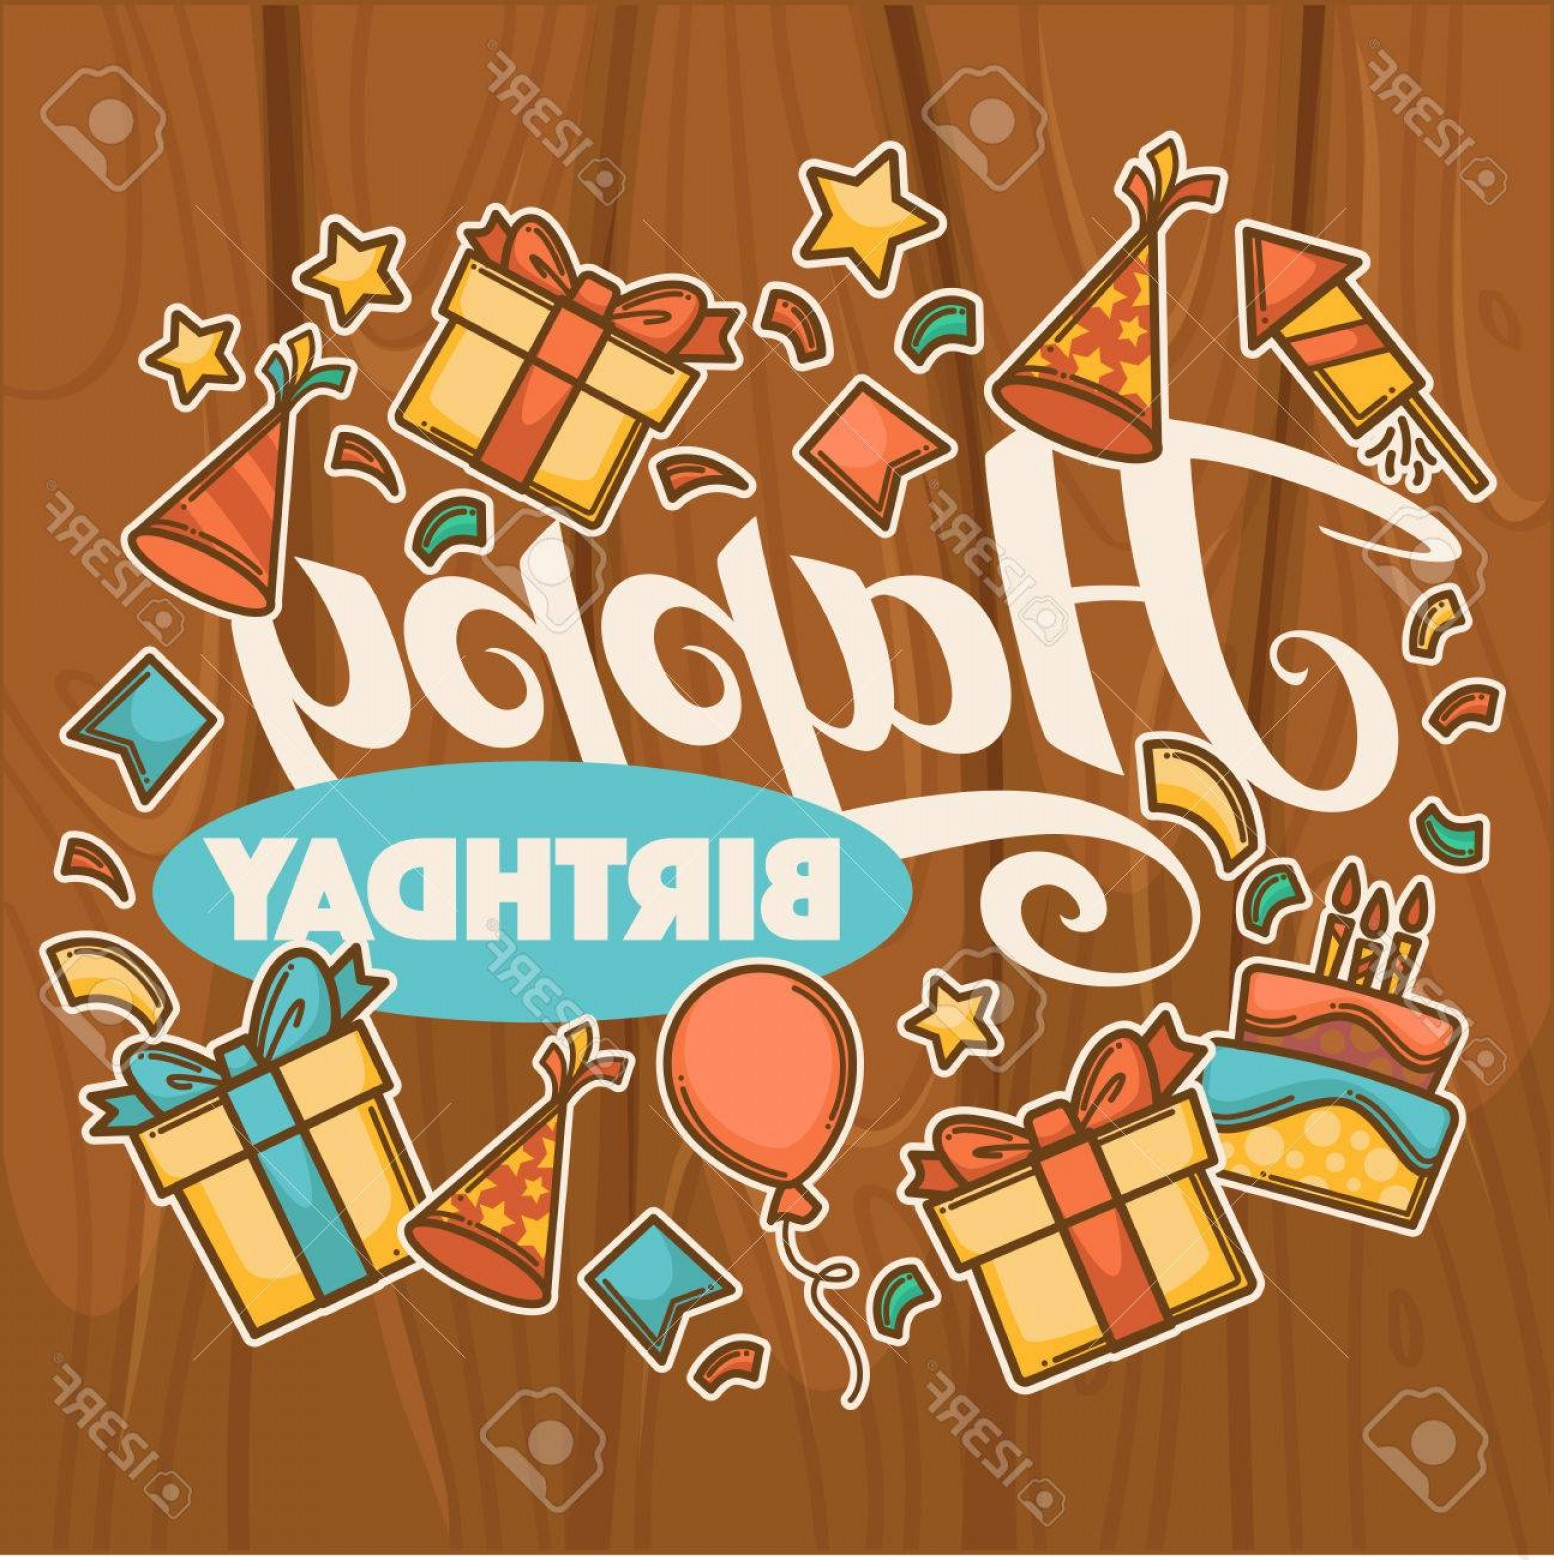 Happy Birthday Vector Art Backdrop: Photostock Vector Happy Birthday Vector Greeting Card Template With Happy Lettering On Wood Background